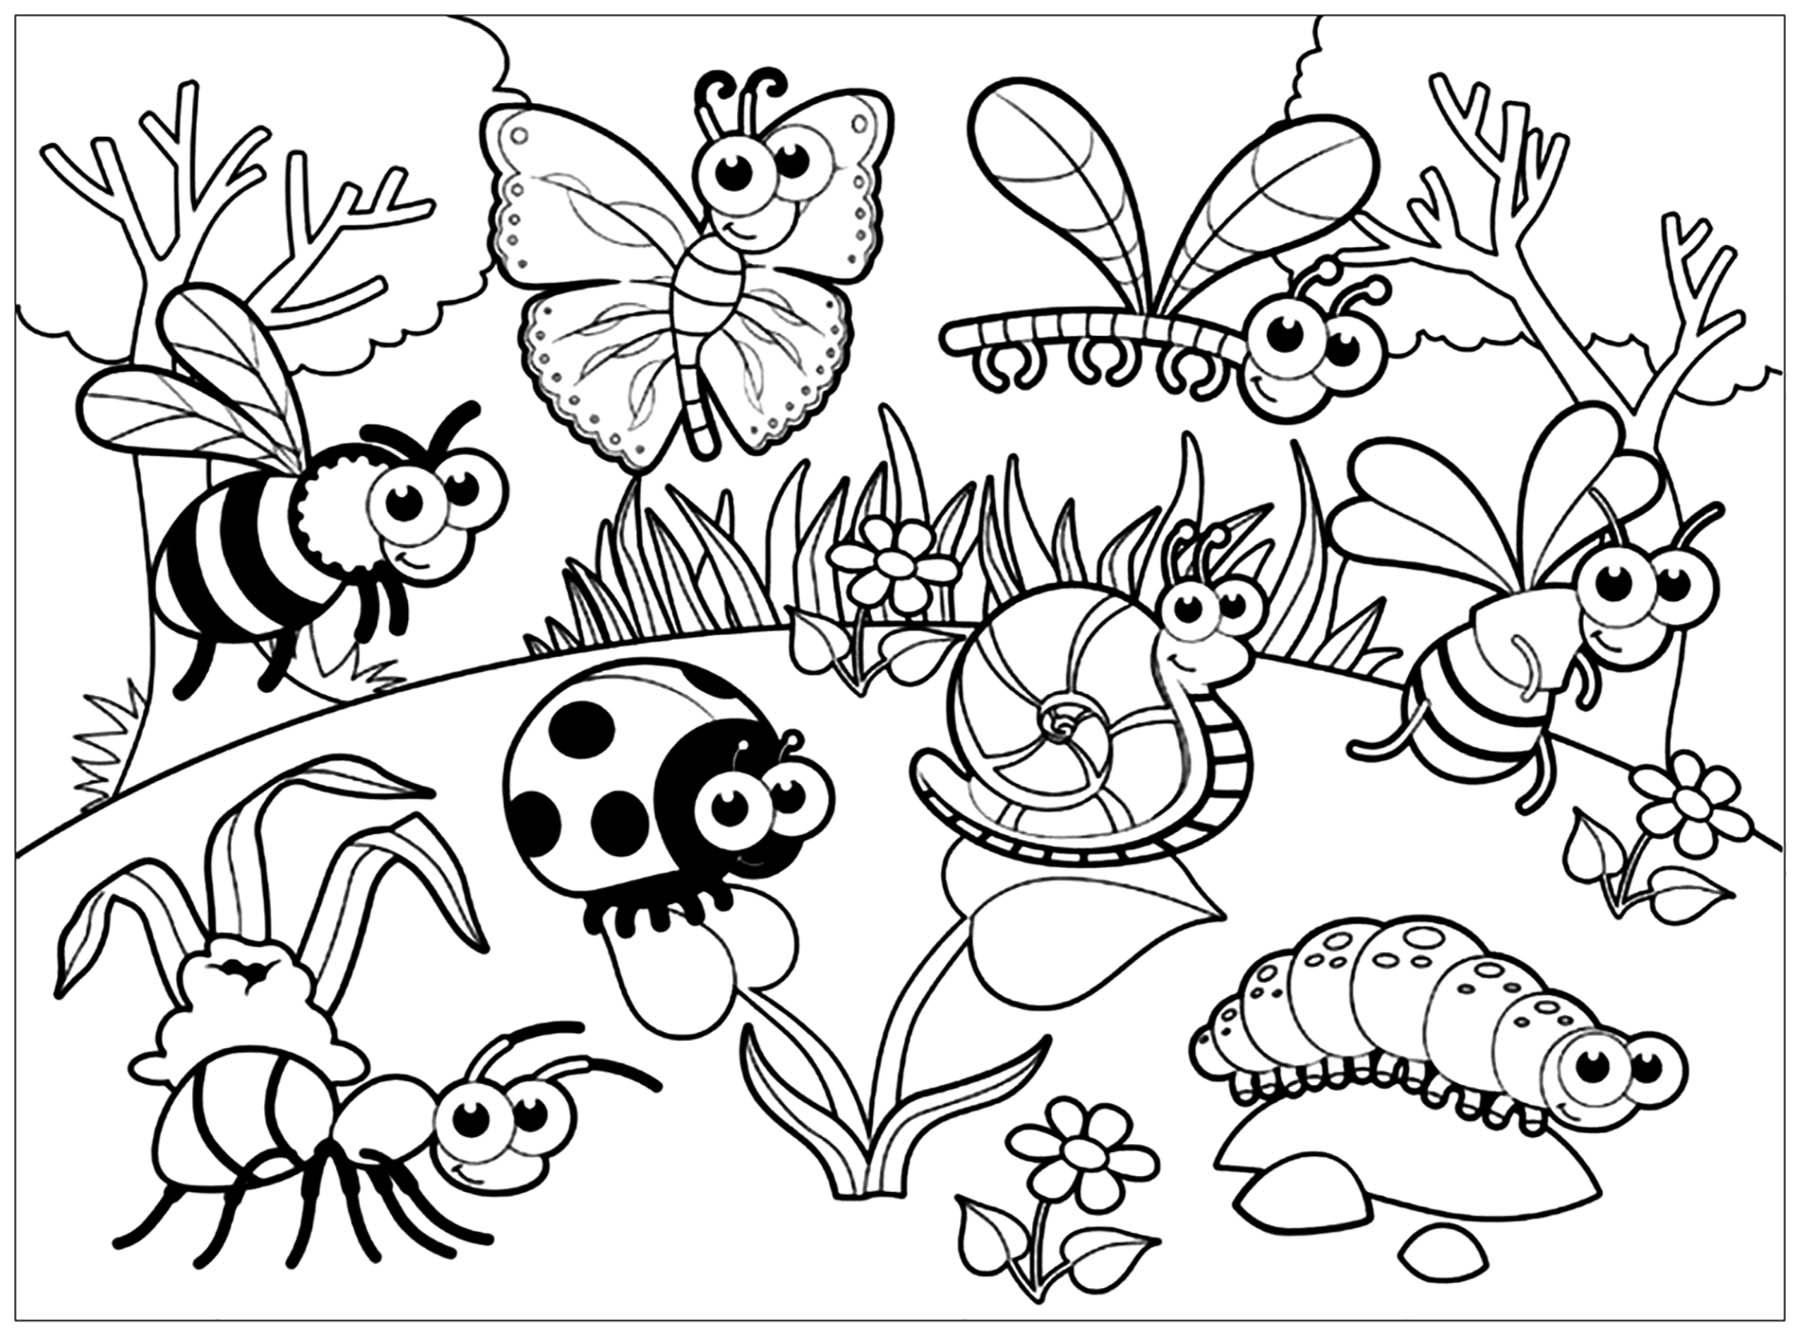 insects coloring sheets insect coloring pages best coloring pages for kids sheets coloring insects